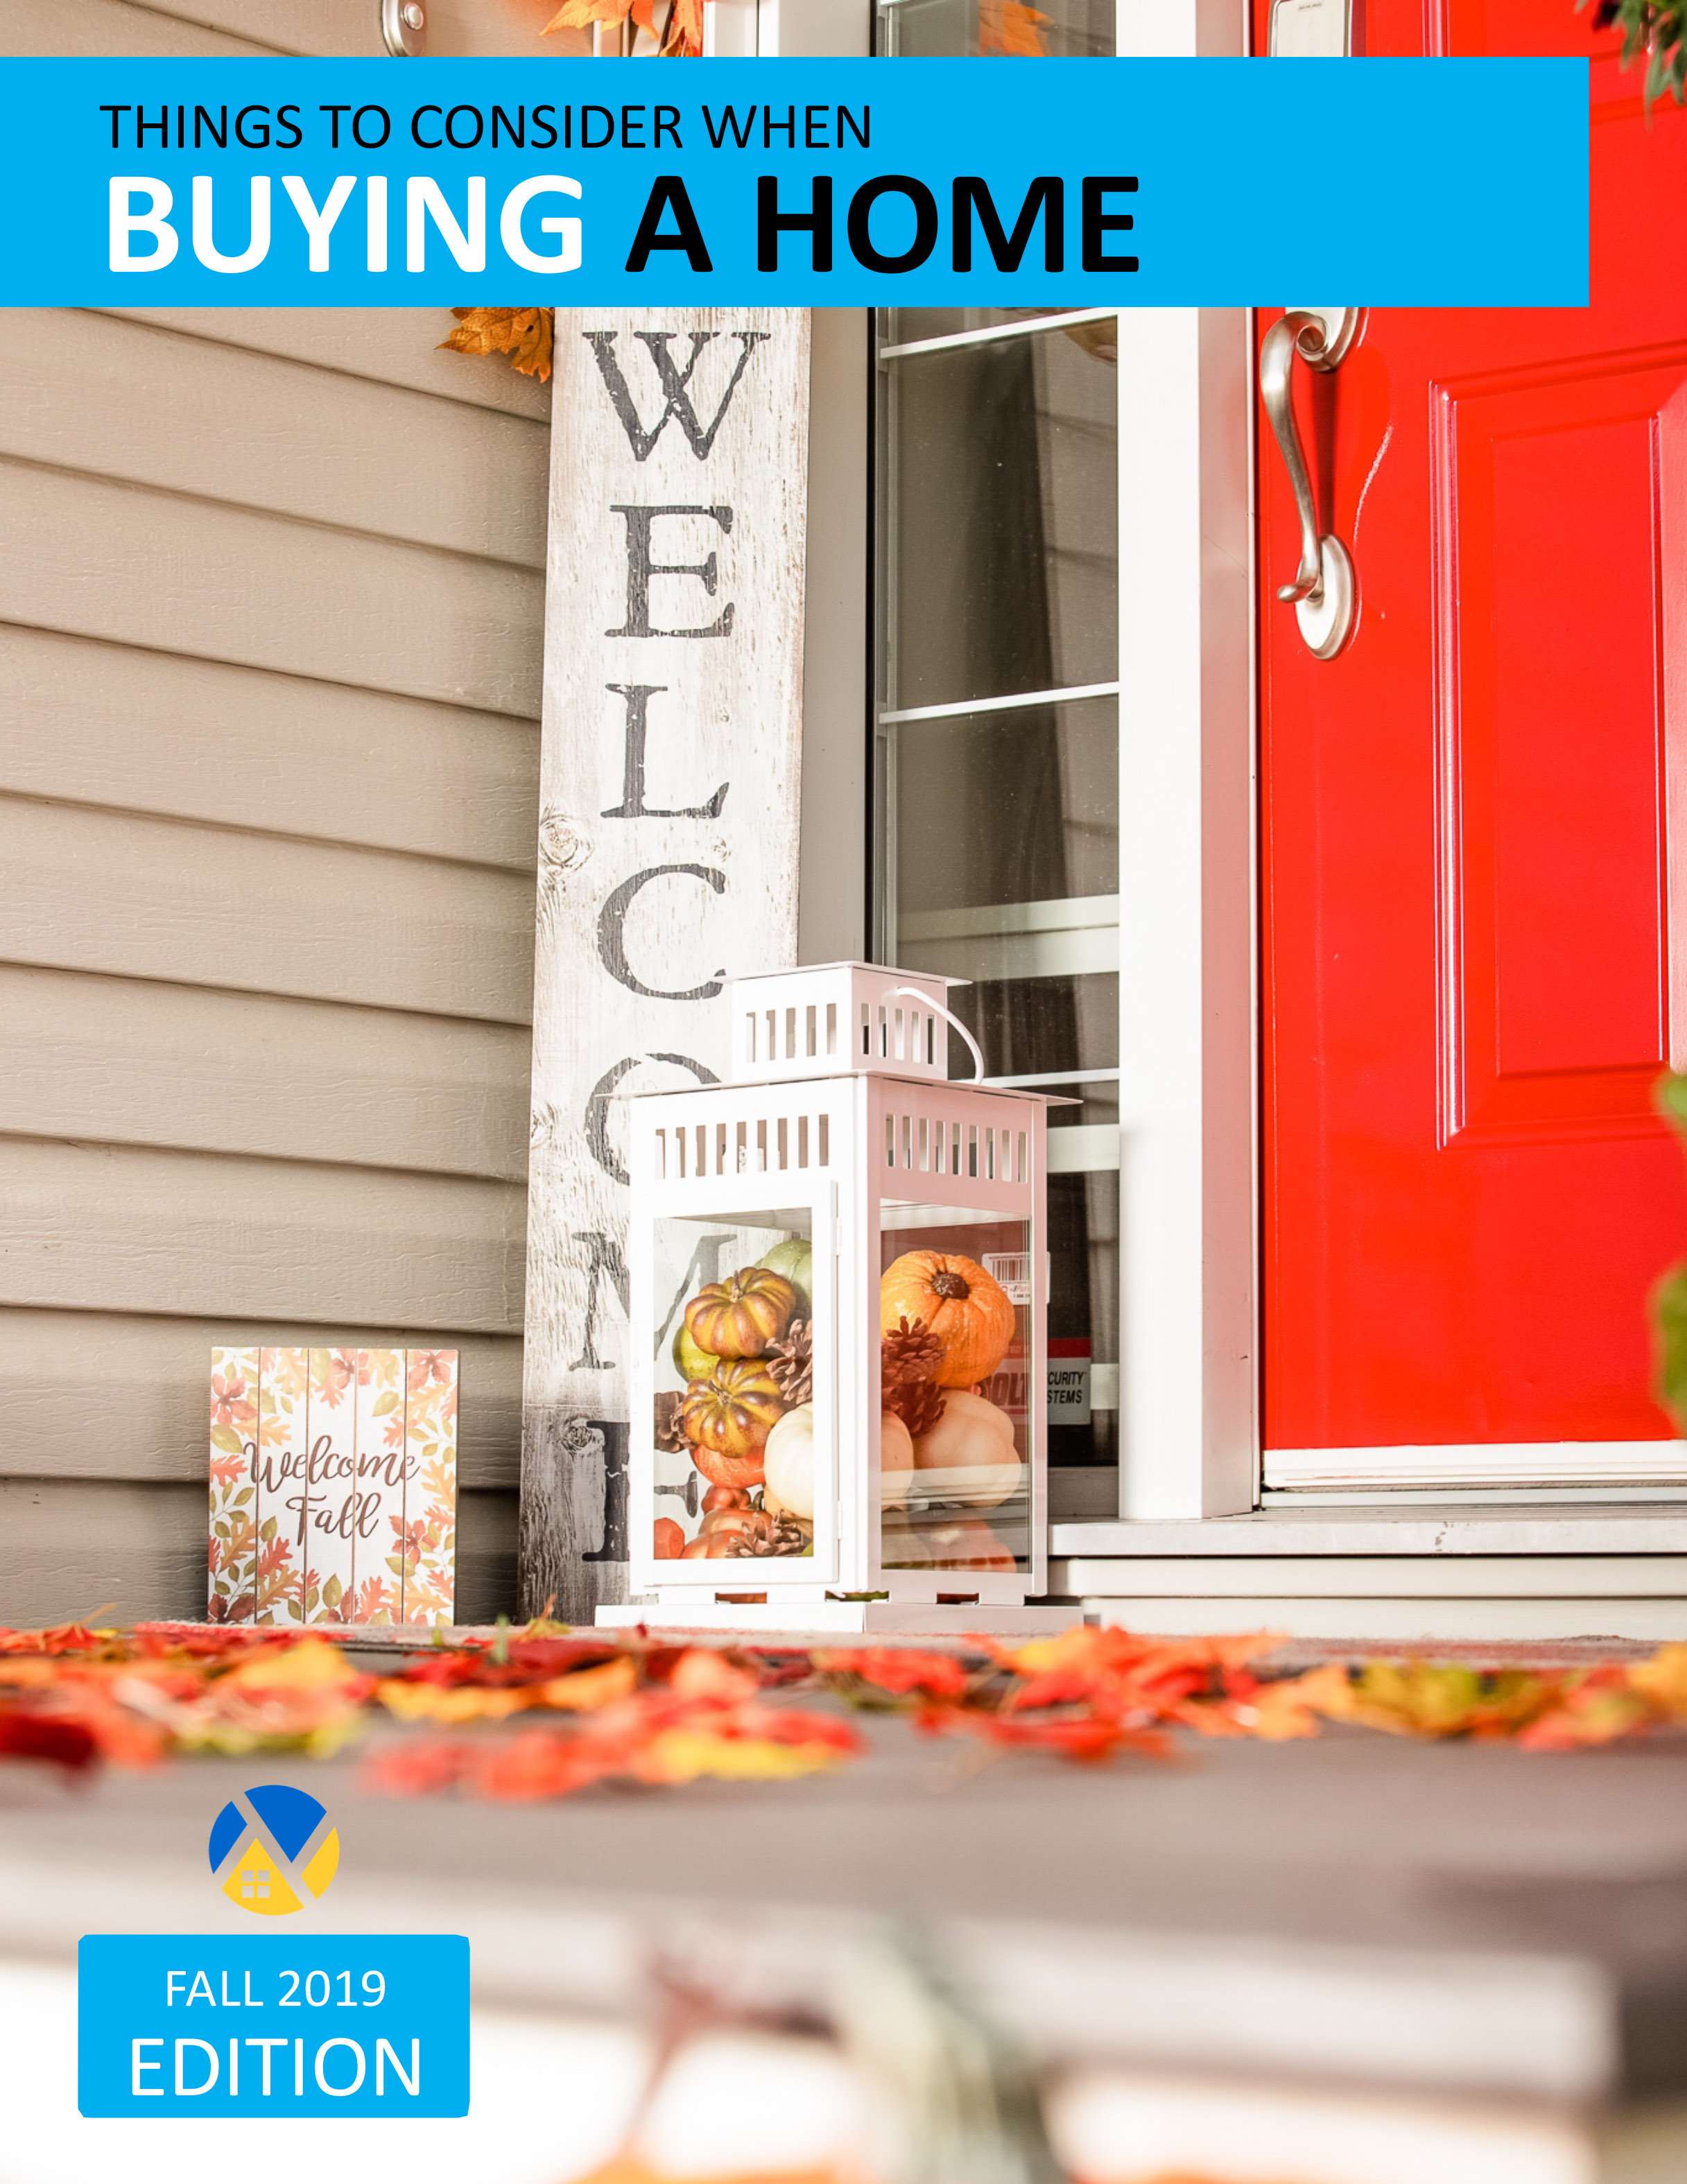 Fidelity Home Group Buyers Guide Fall 2019.jpg